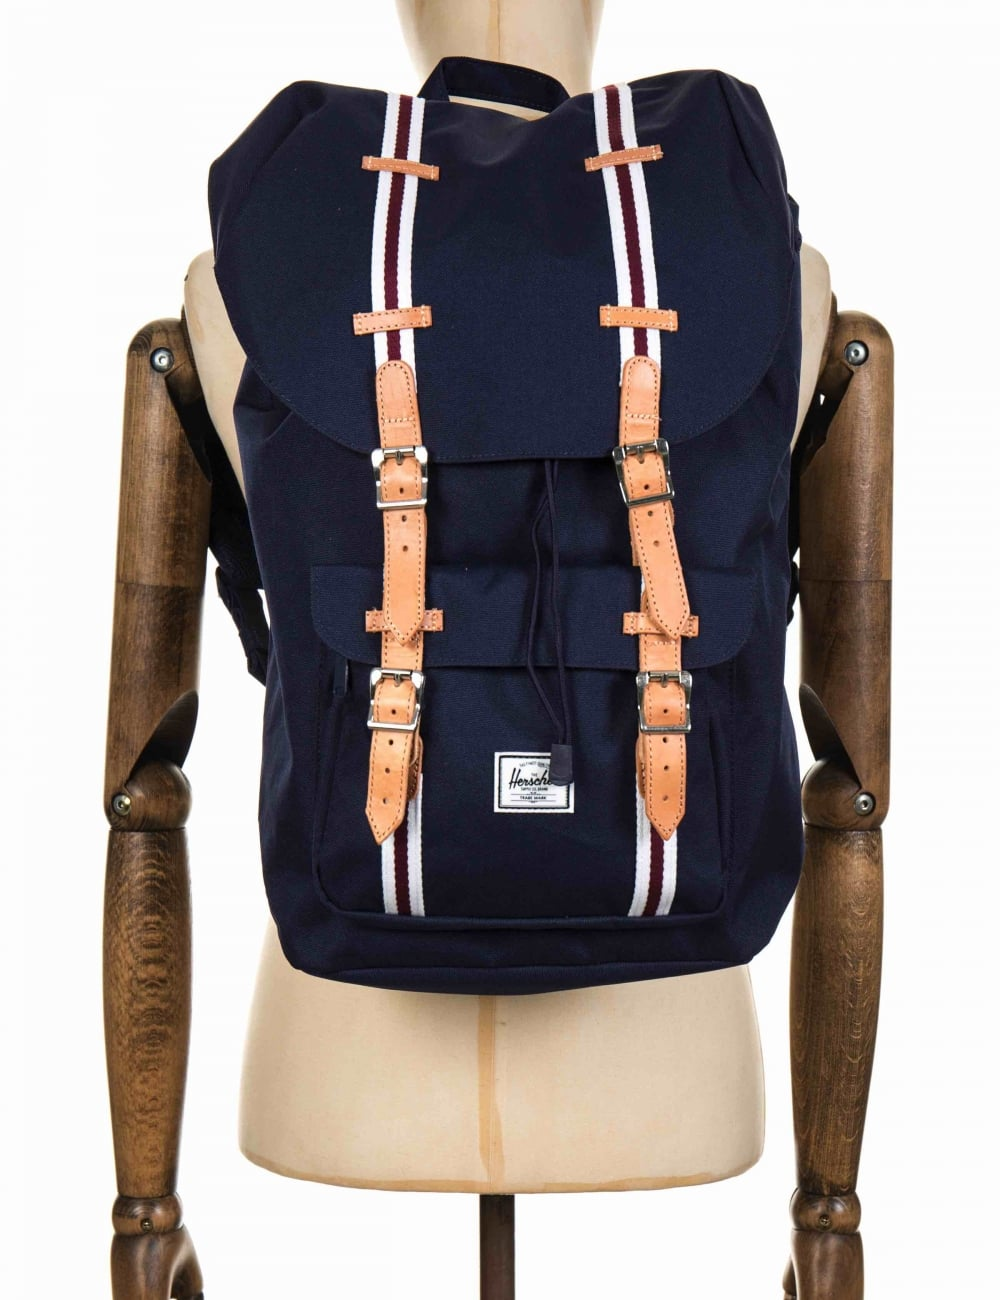 ffb834b1bb8 Herschel Supply Co Little America 25L Backpack - Peacoat White Windsor Wine